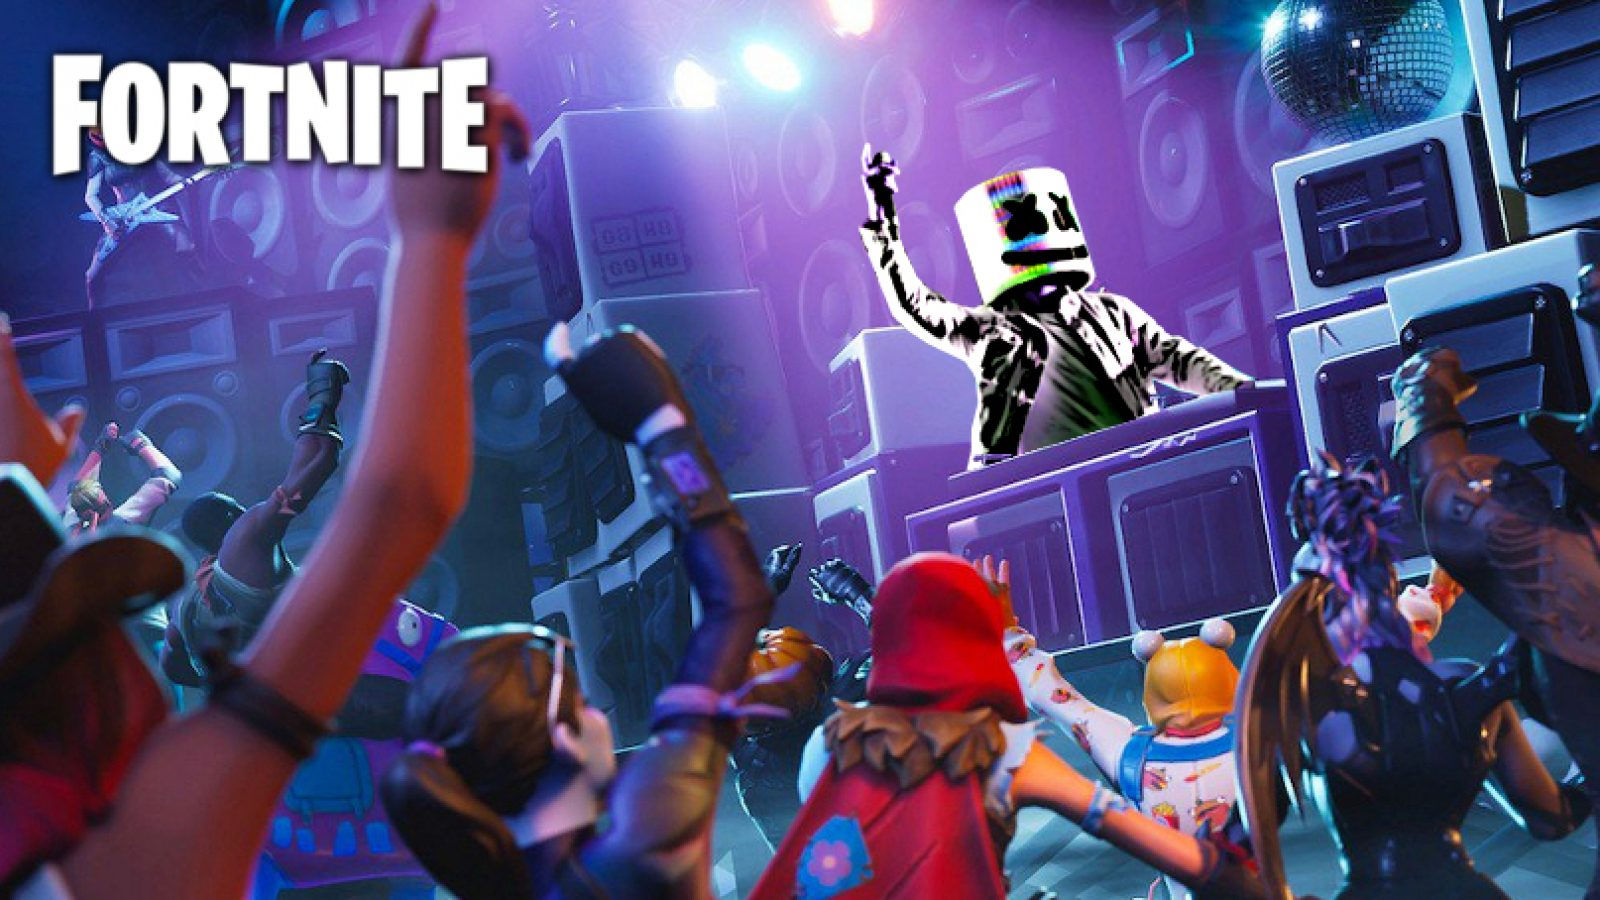 fortnite-marshmello-event-concert-pleasant-park-in-game-how-to-watch-when-time